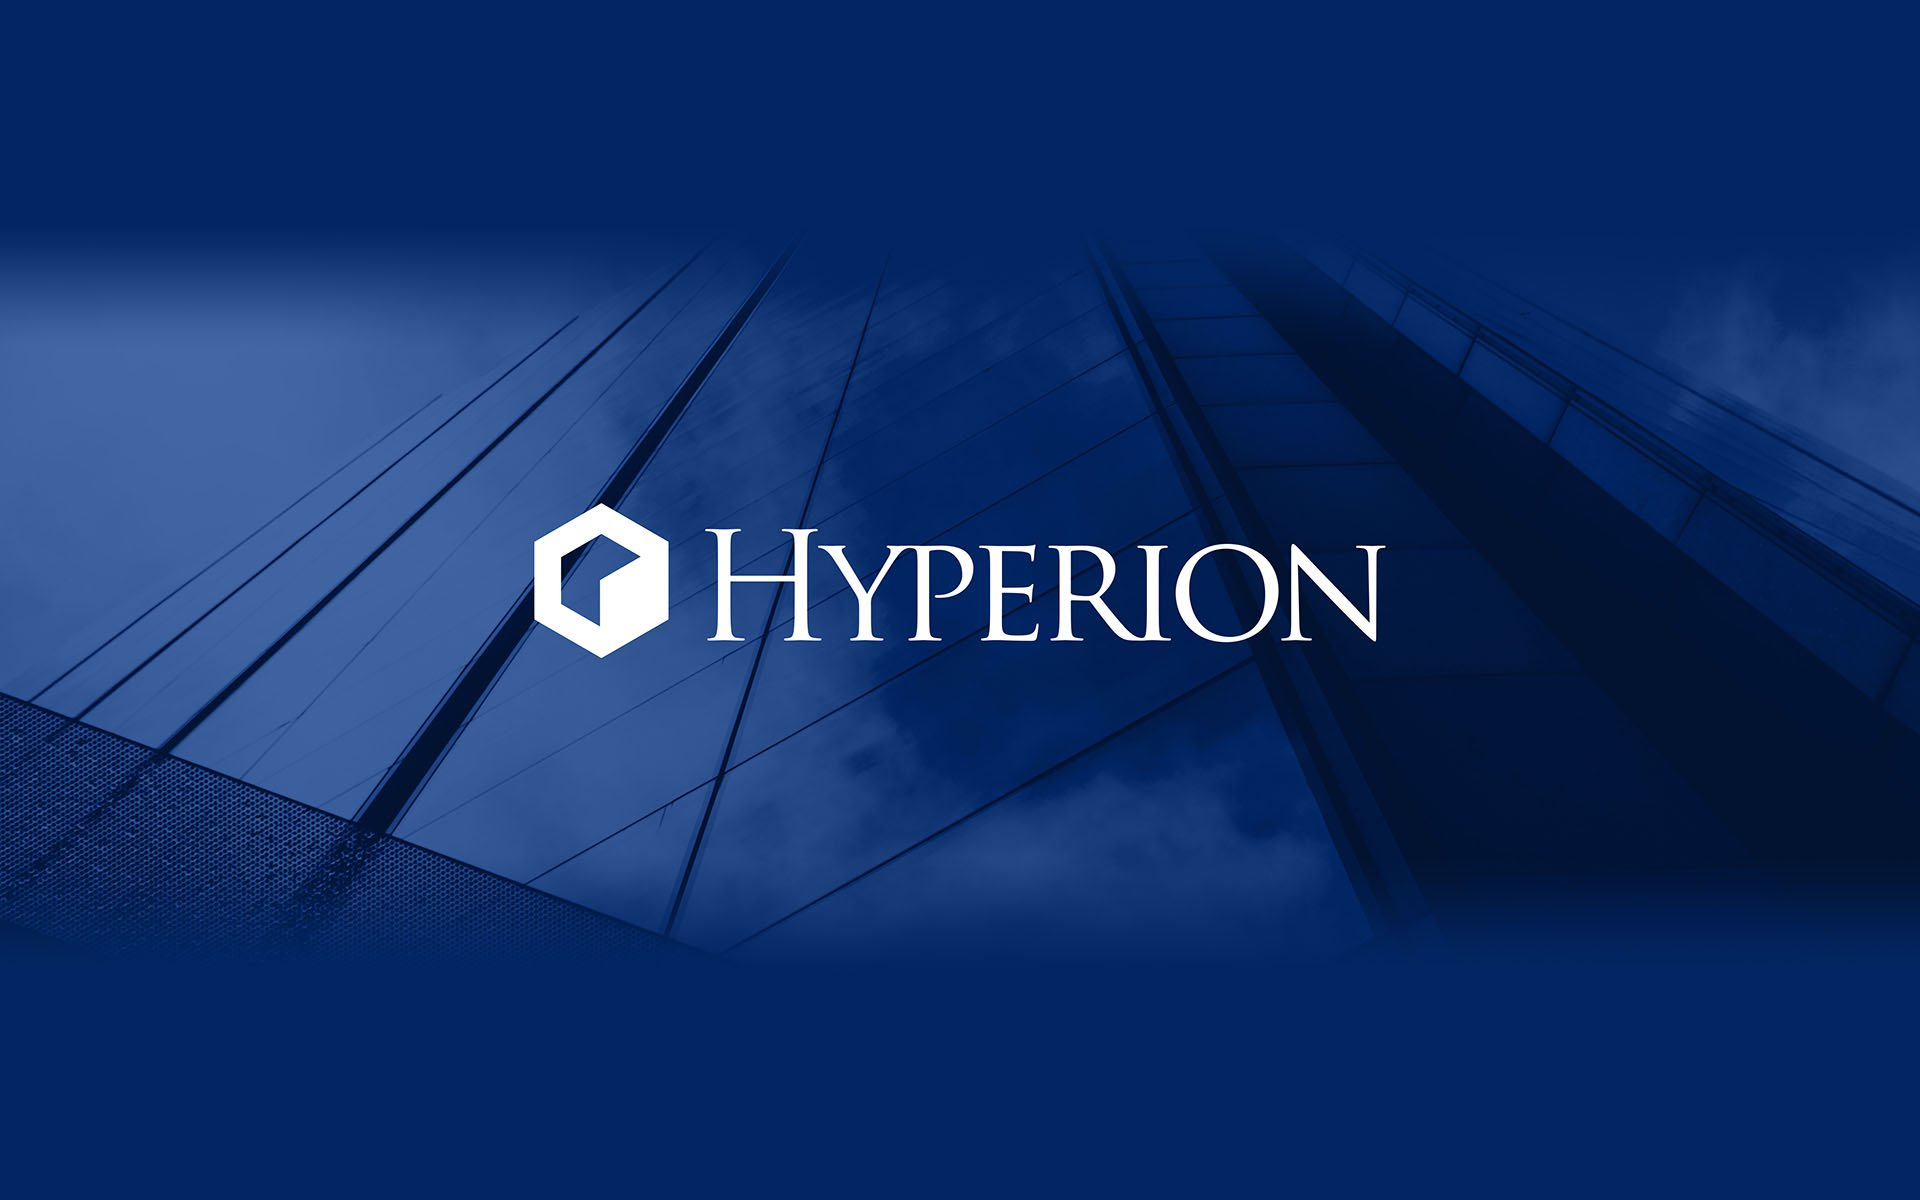 ICO Investing Established as the New Authority in 2018 - Hyperion Fund Poised to Capture Further Growth